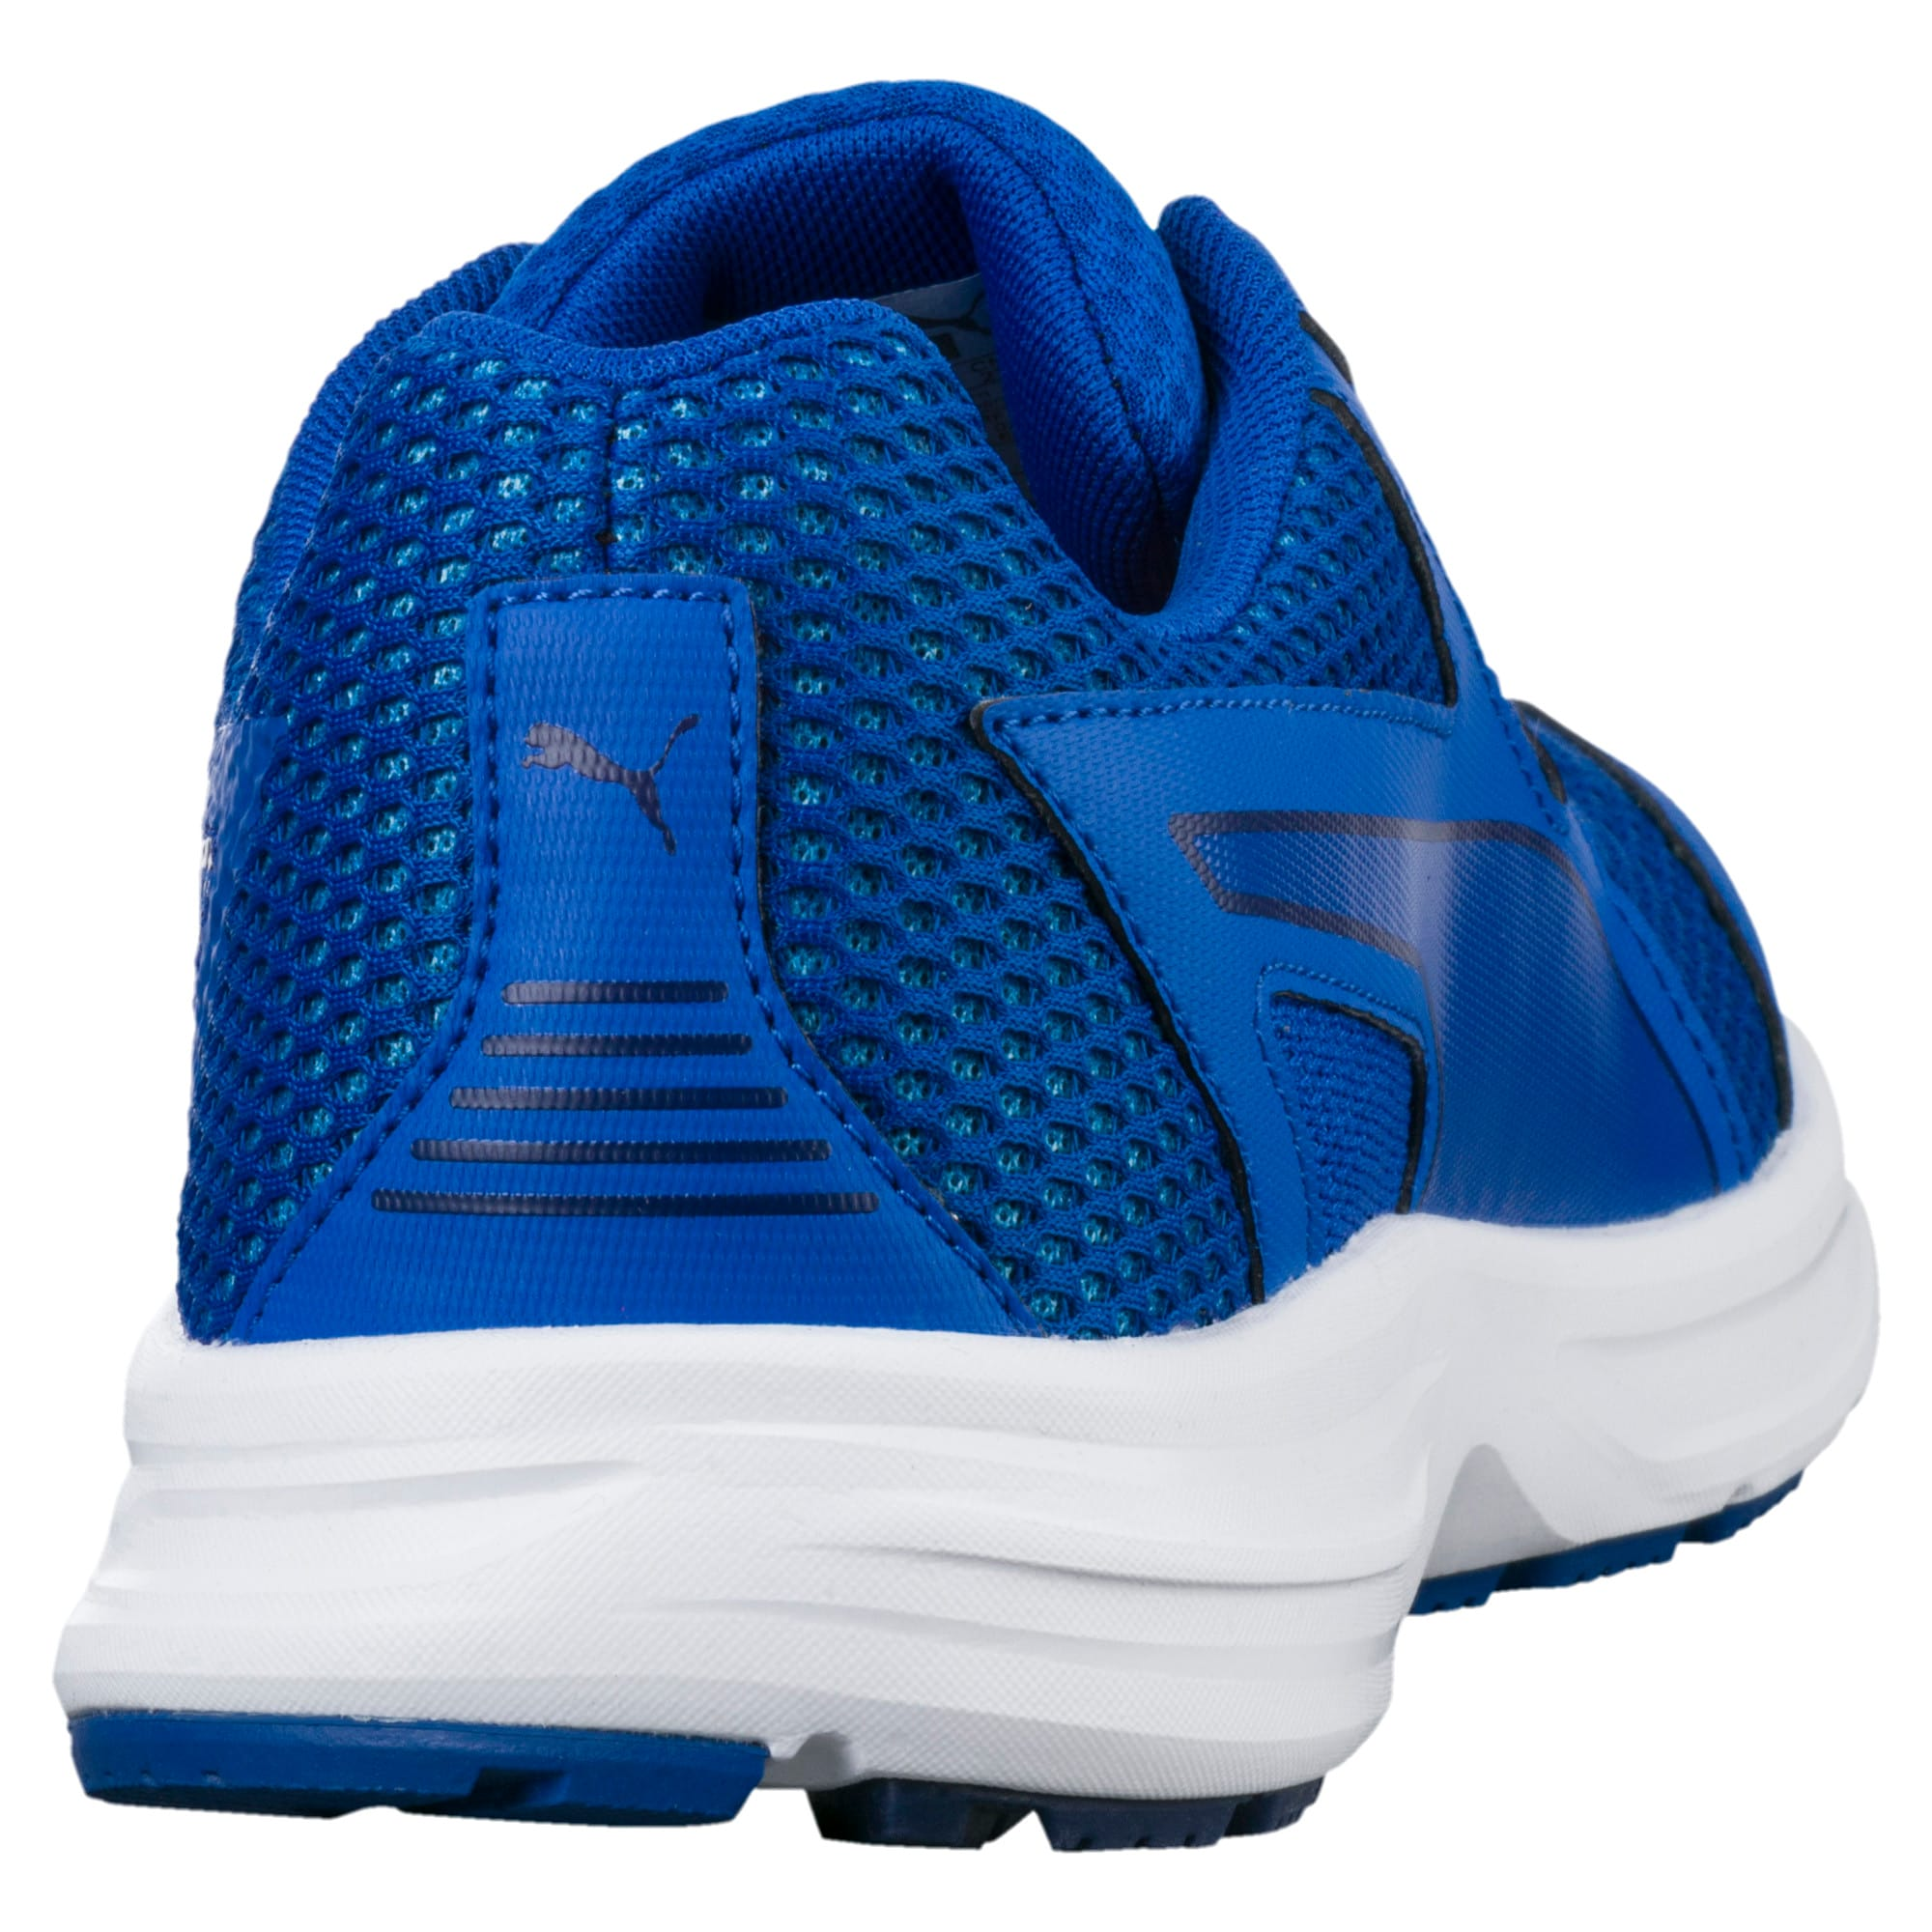 Thumbnail 3 of Essential Runner Men's Running Shoes, Lapis Blue-Blue Depths-Turq, medium-IND